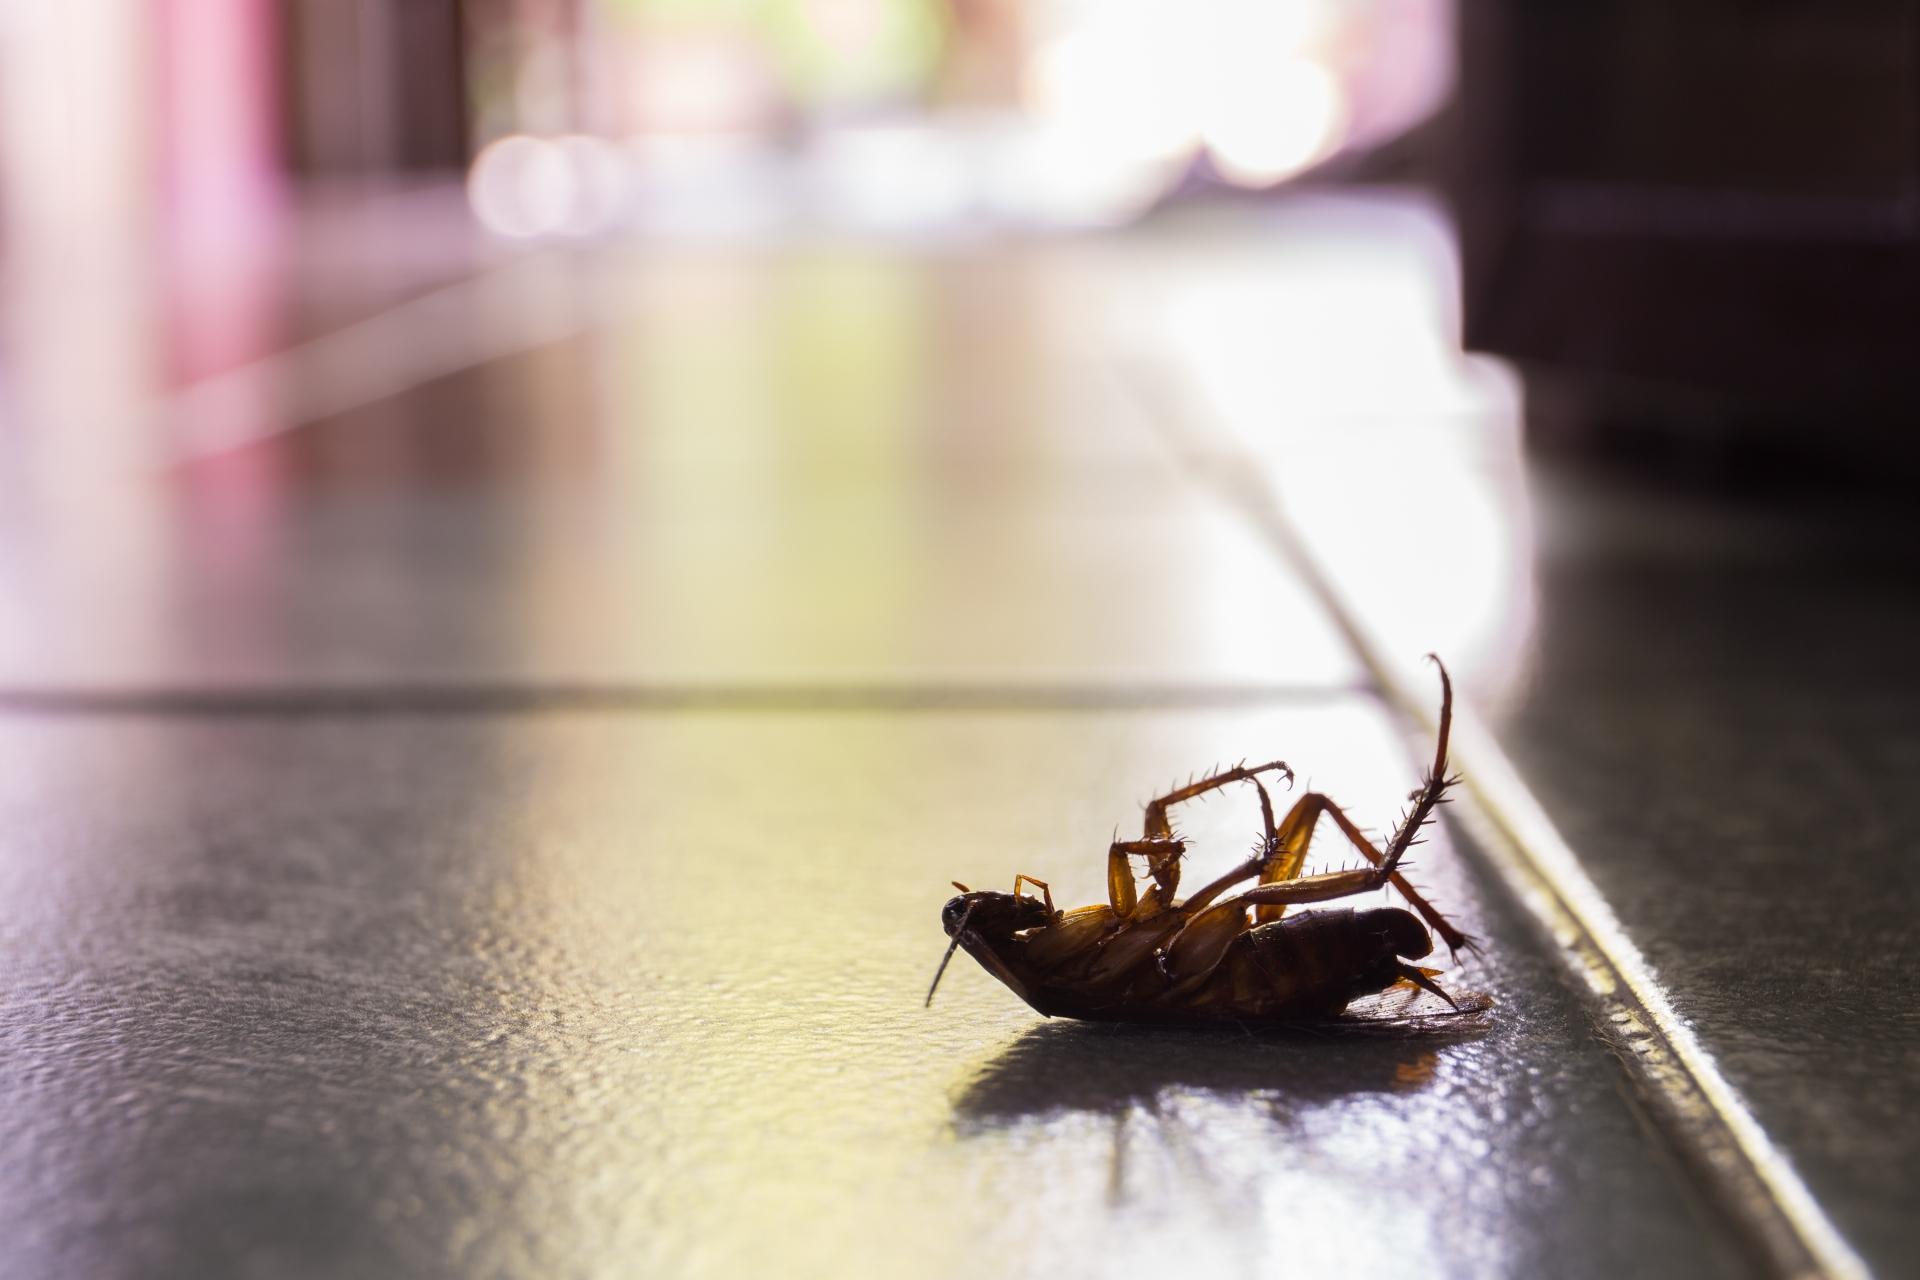 Cockroach Control, Pest Control in Tulse Hill, West Norwood, SE27. Call Now 020 8166 9746